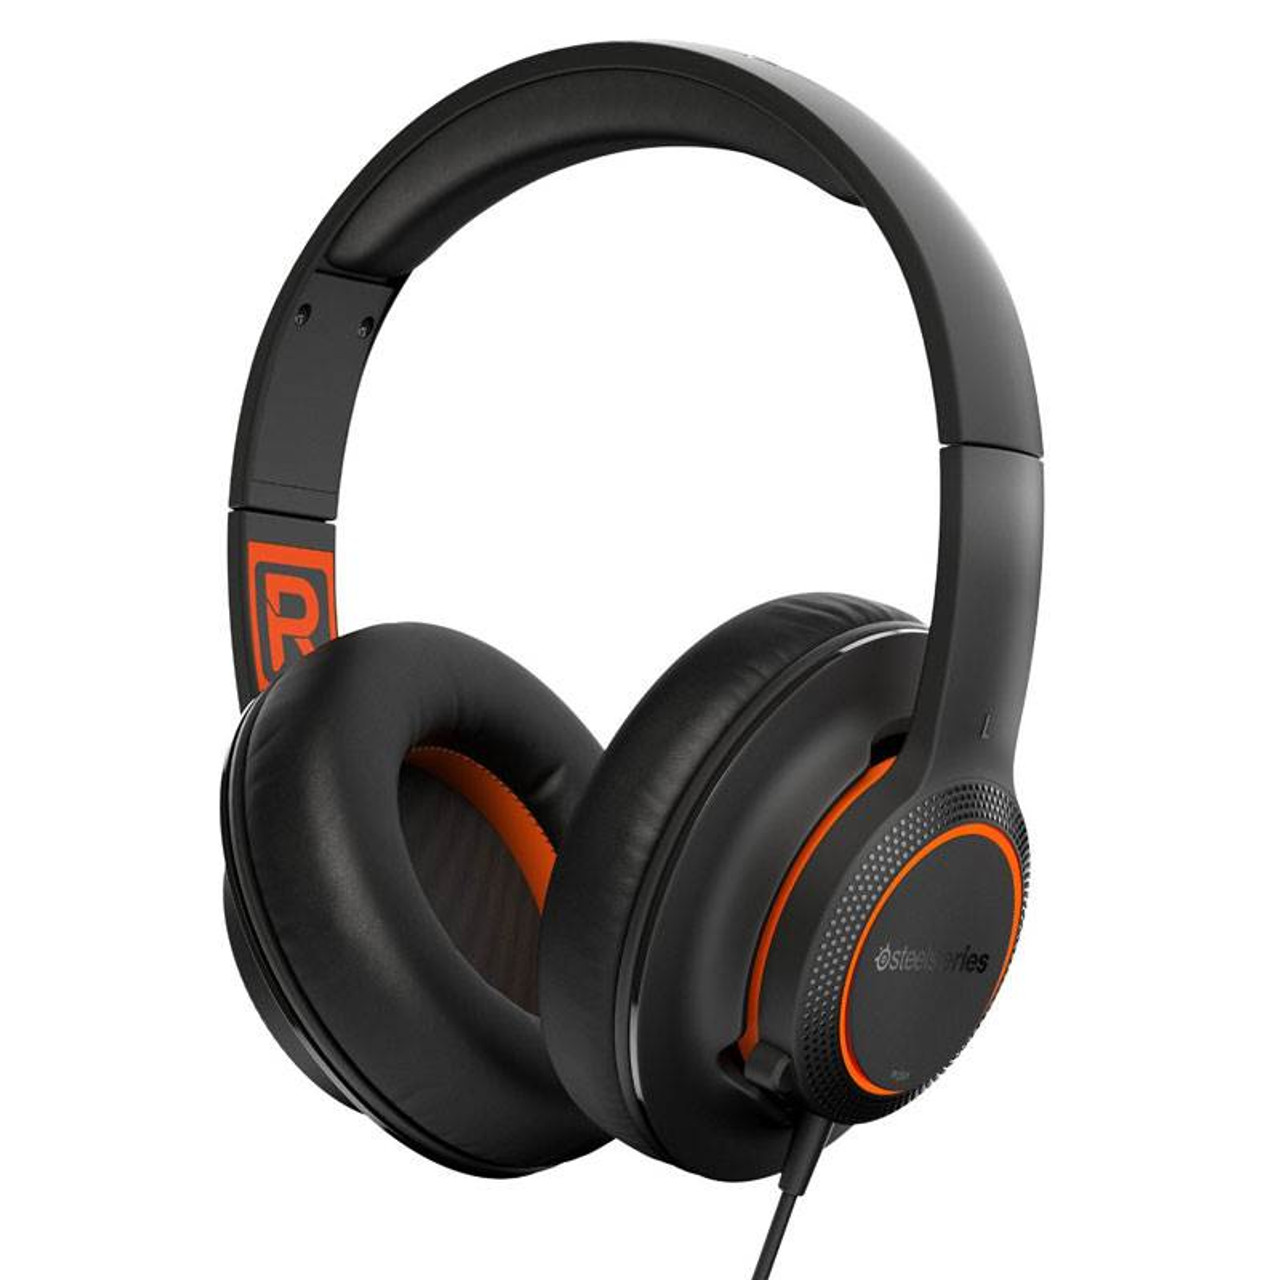 Product image for SteelSeries Siberia 100 Gaming Headset | CX Computer Superstore